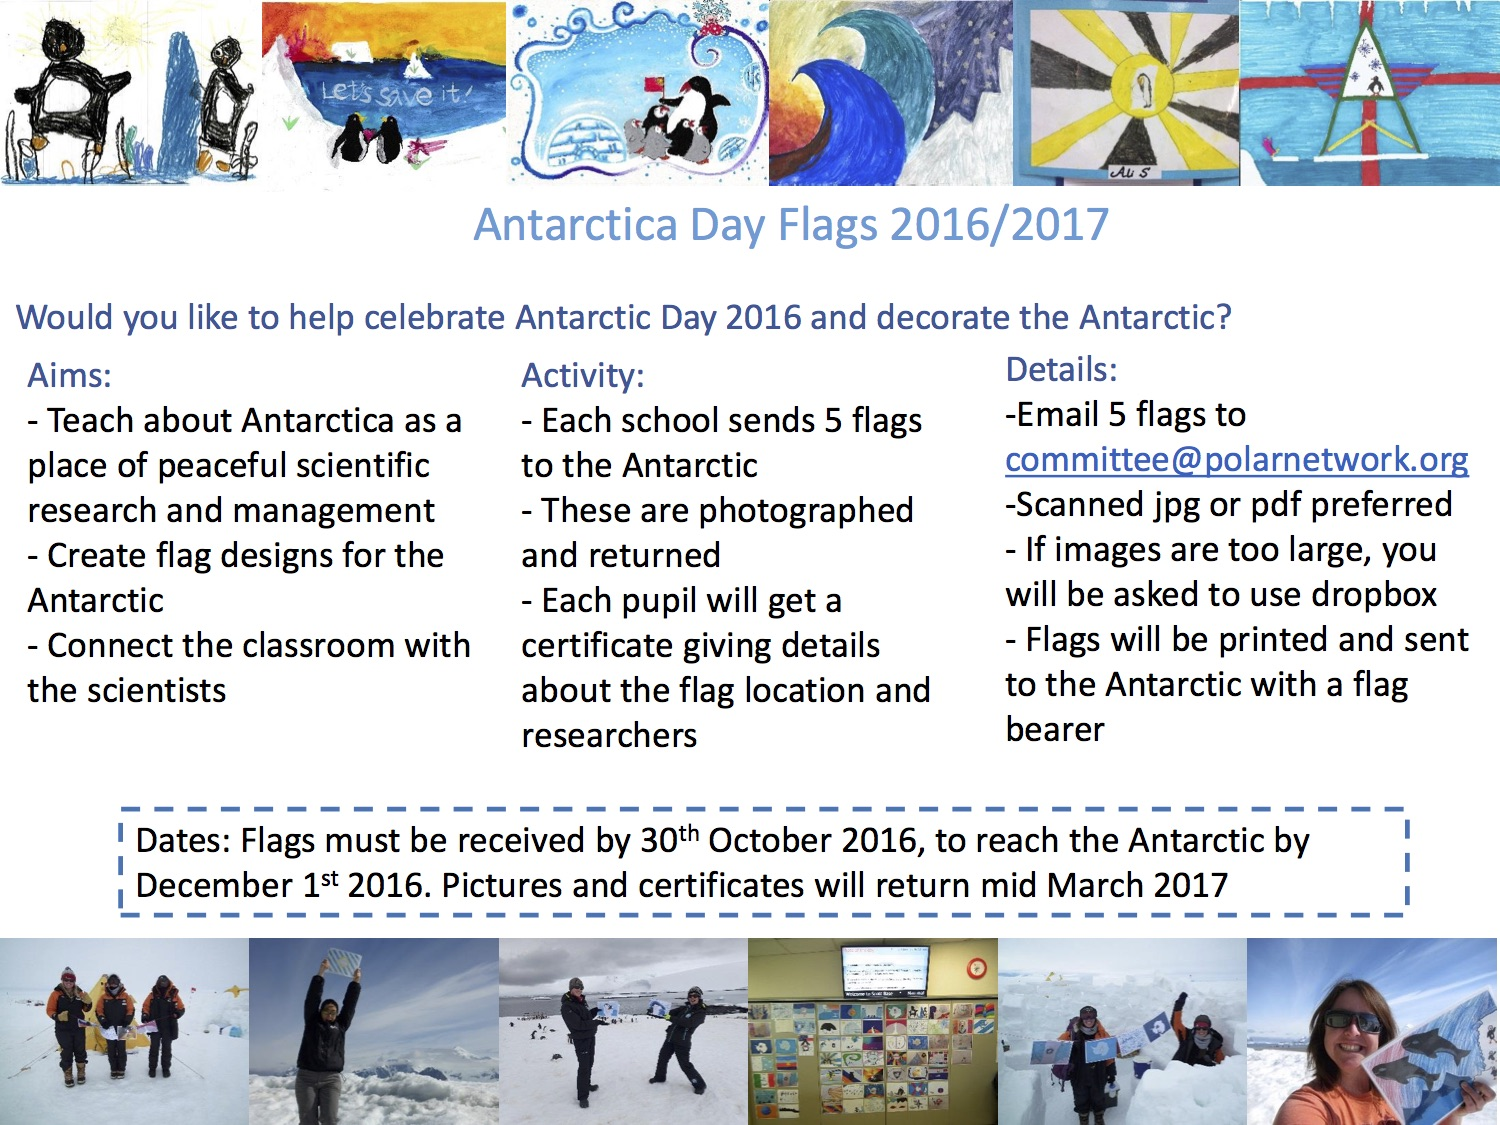 antarctic day flags 2016 copy